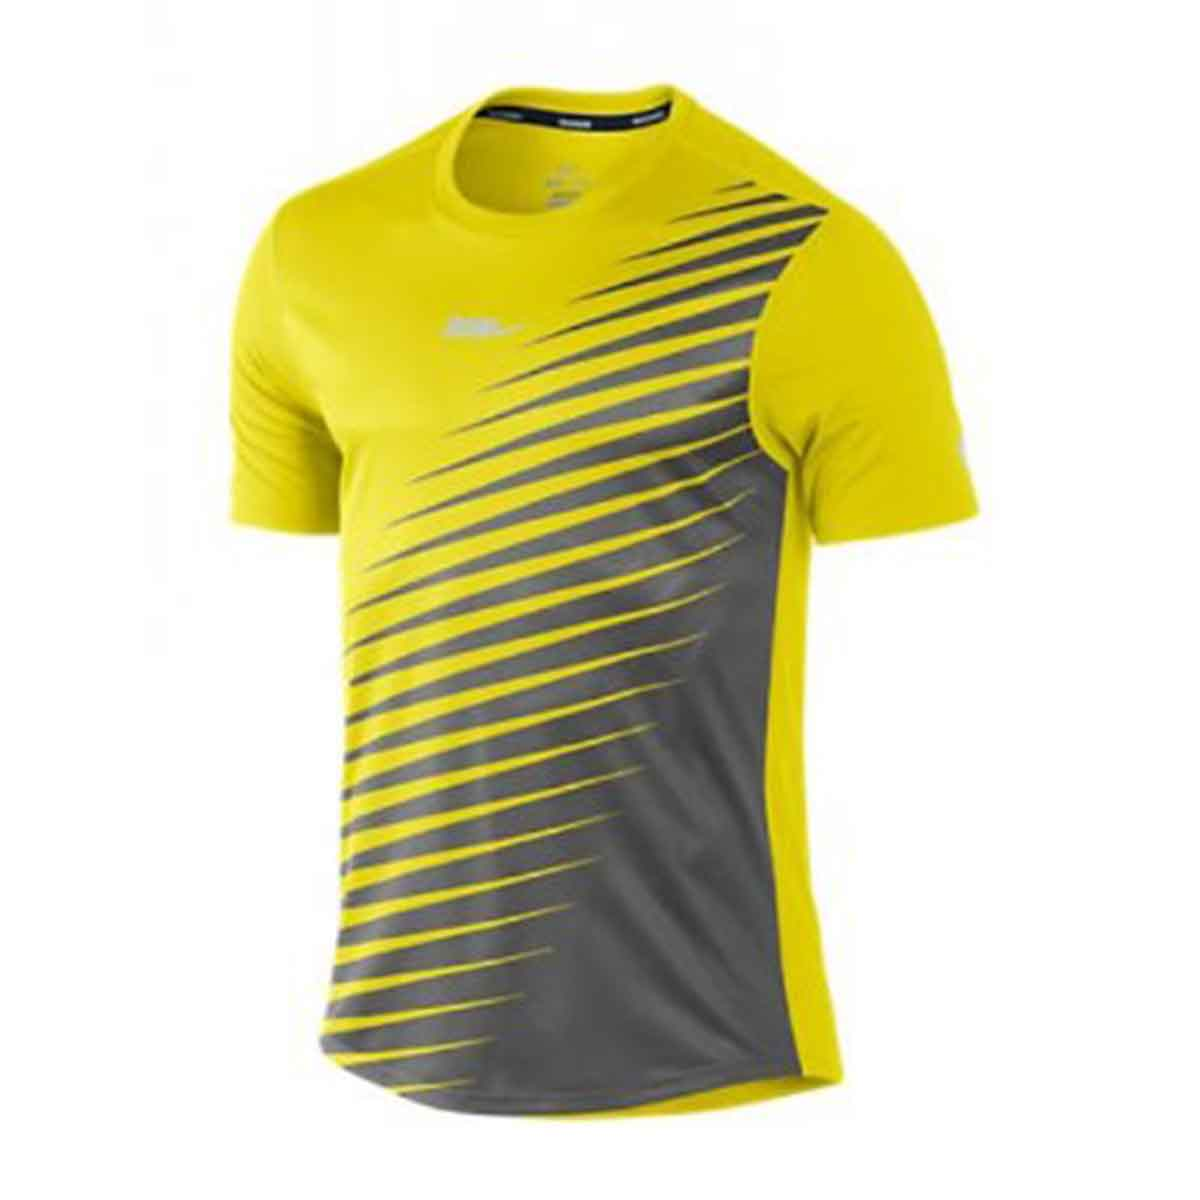 Buy Nike Men S Sublimated Running T Shirt Yellow Online